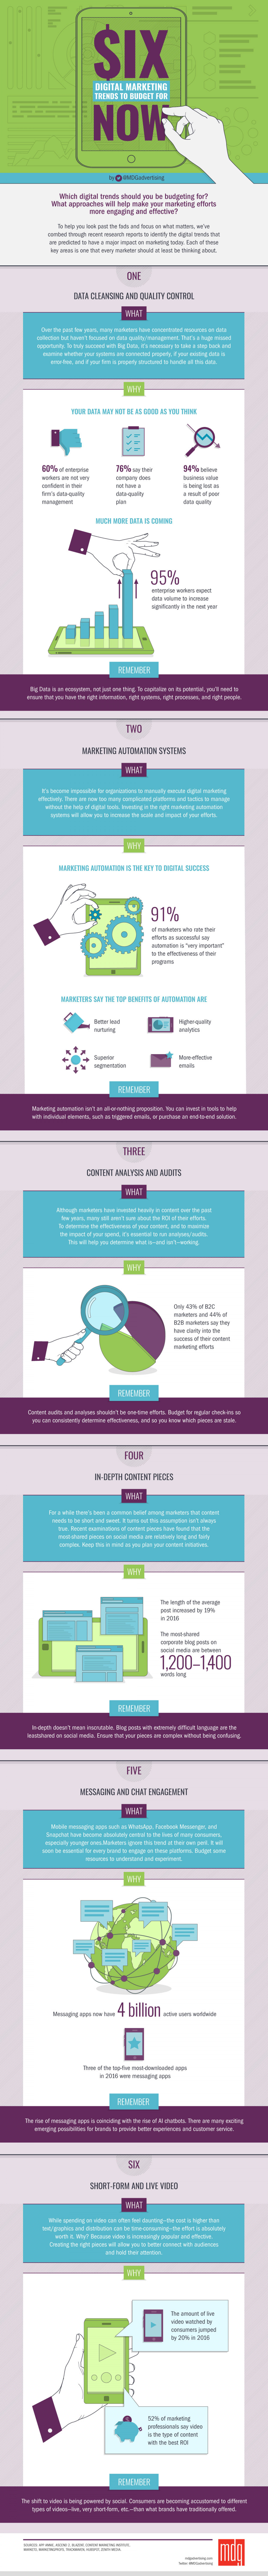 6 Digital Marketing Trends to Budget for Now [Infographic] Infographic